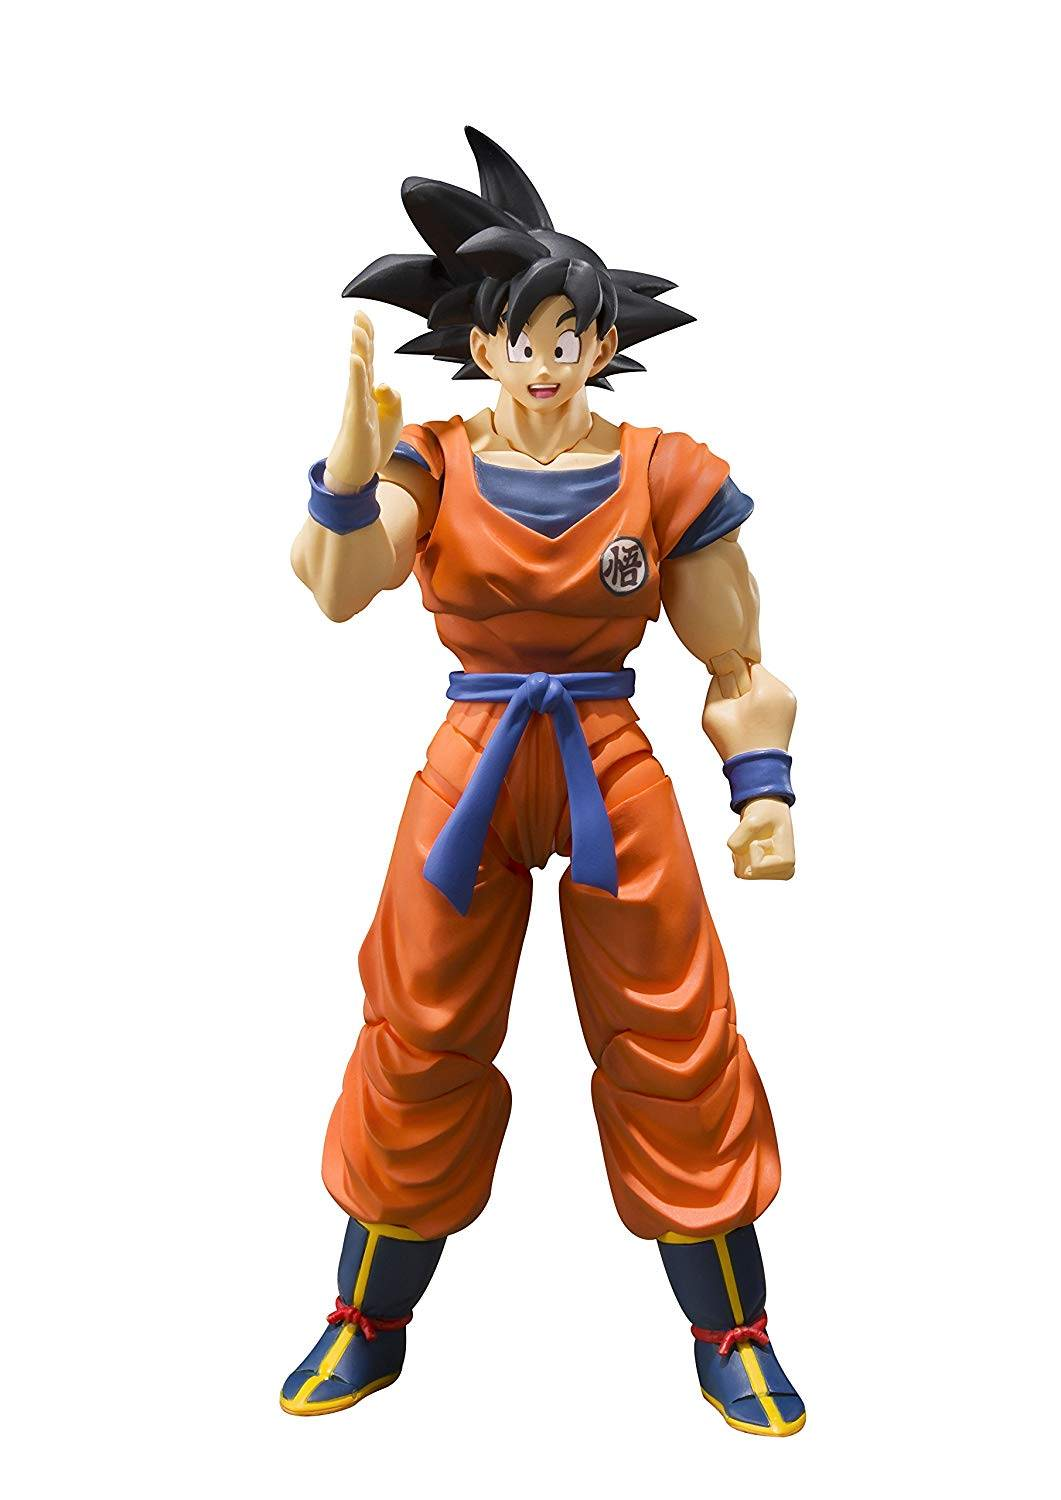 Goku A Saiyan Raised On Earth SH Figuarts